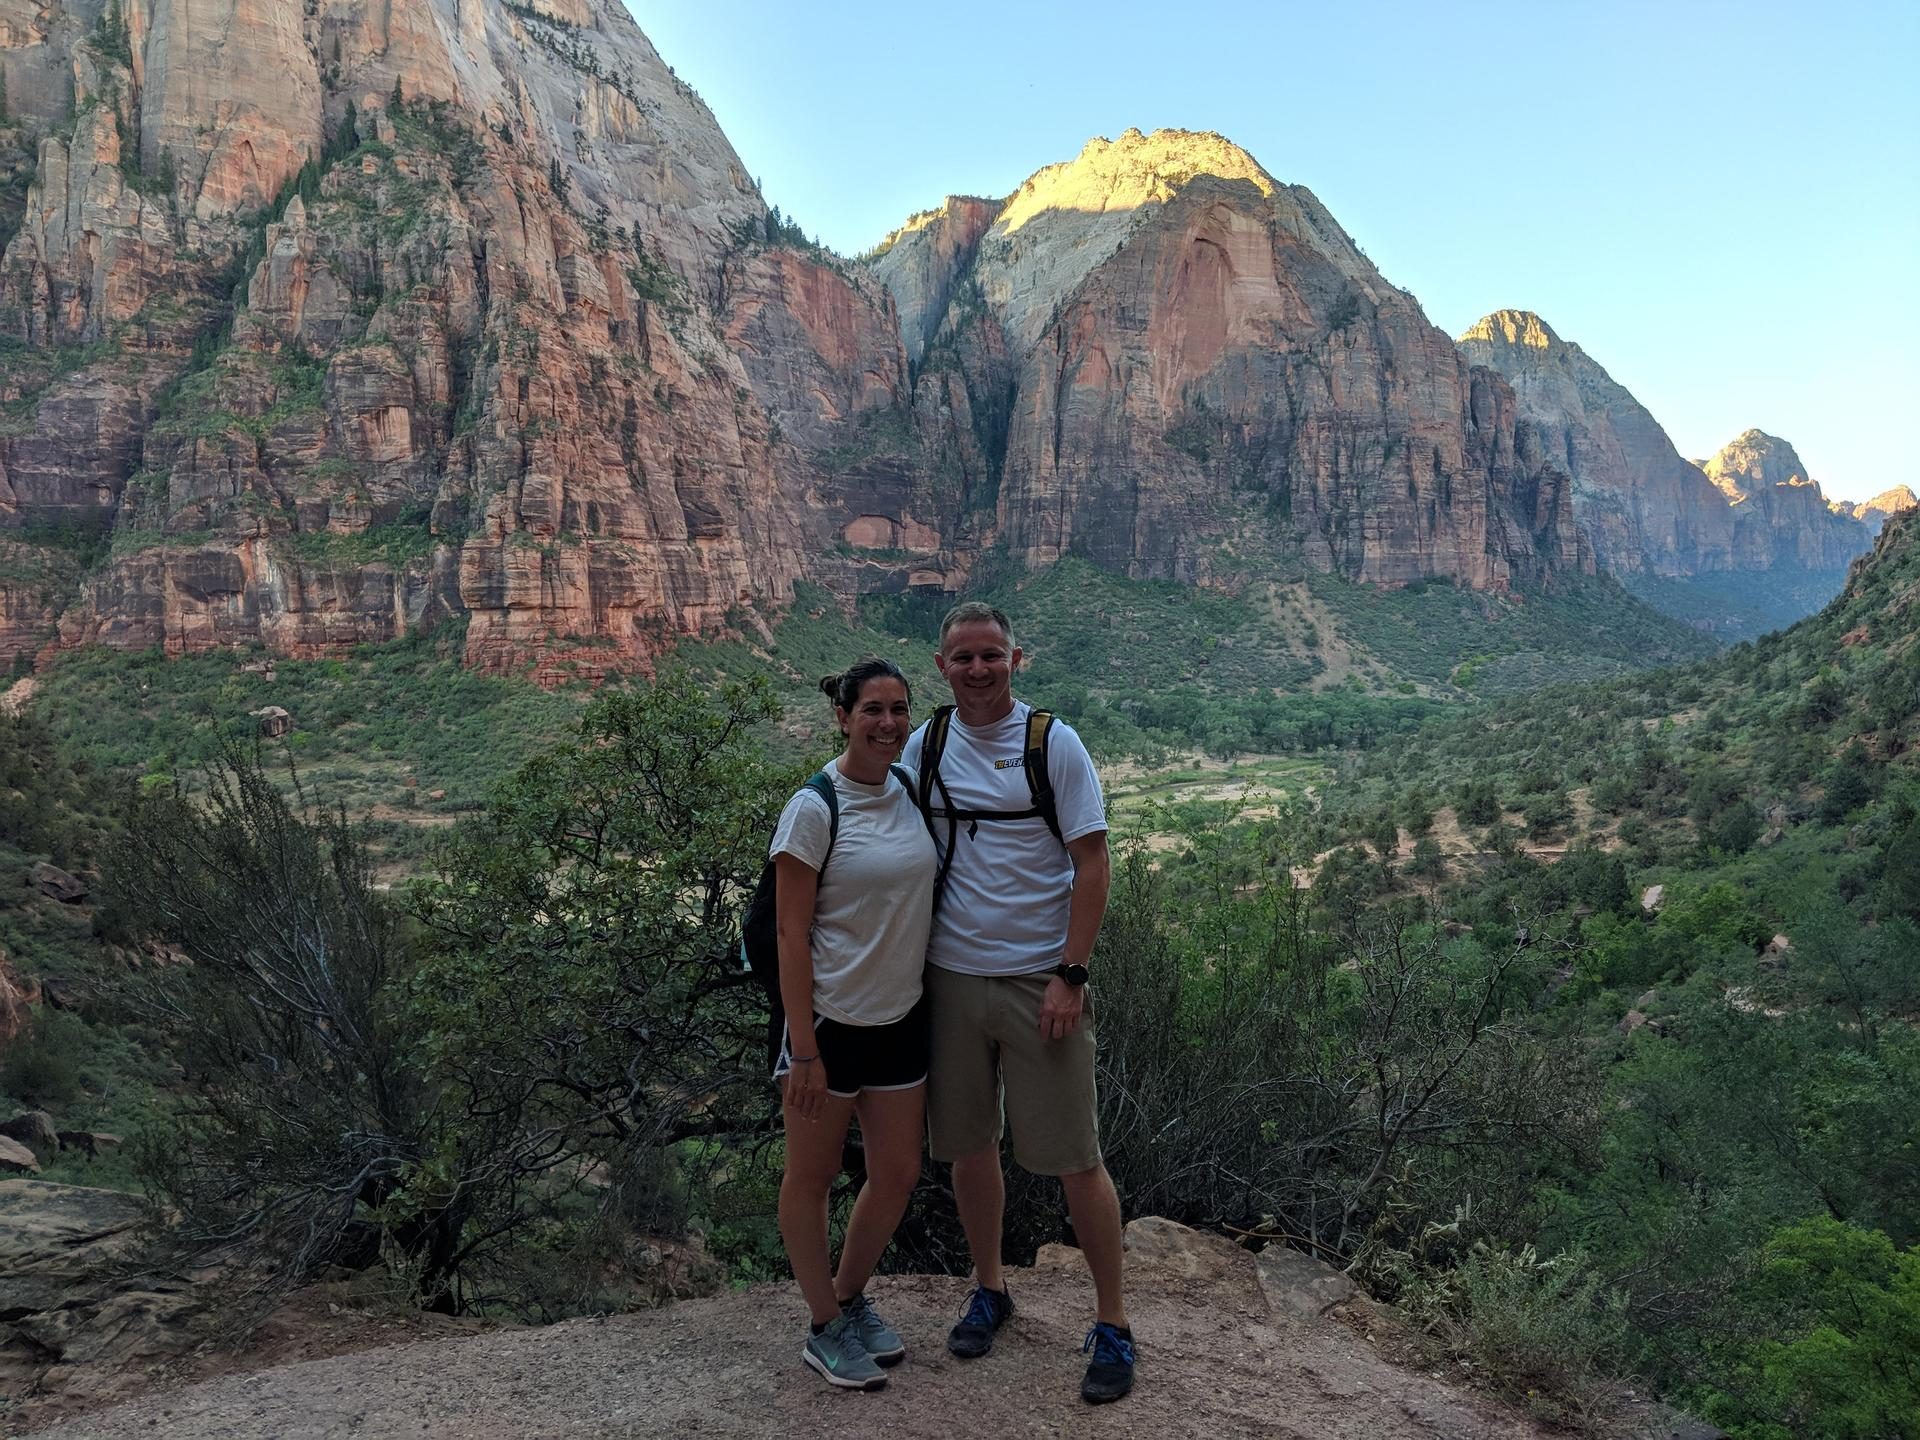 Jenn and Nate at Zion